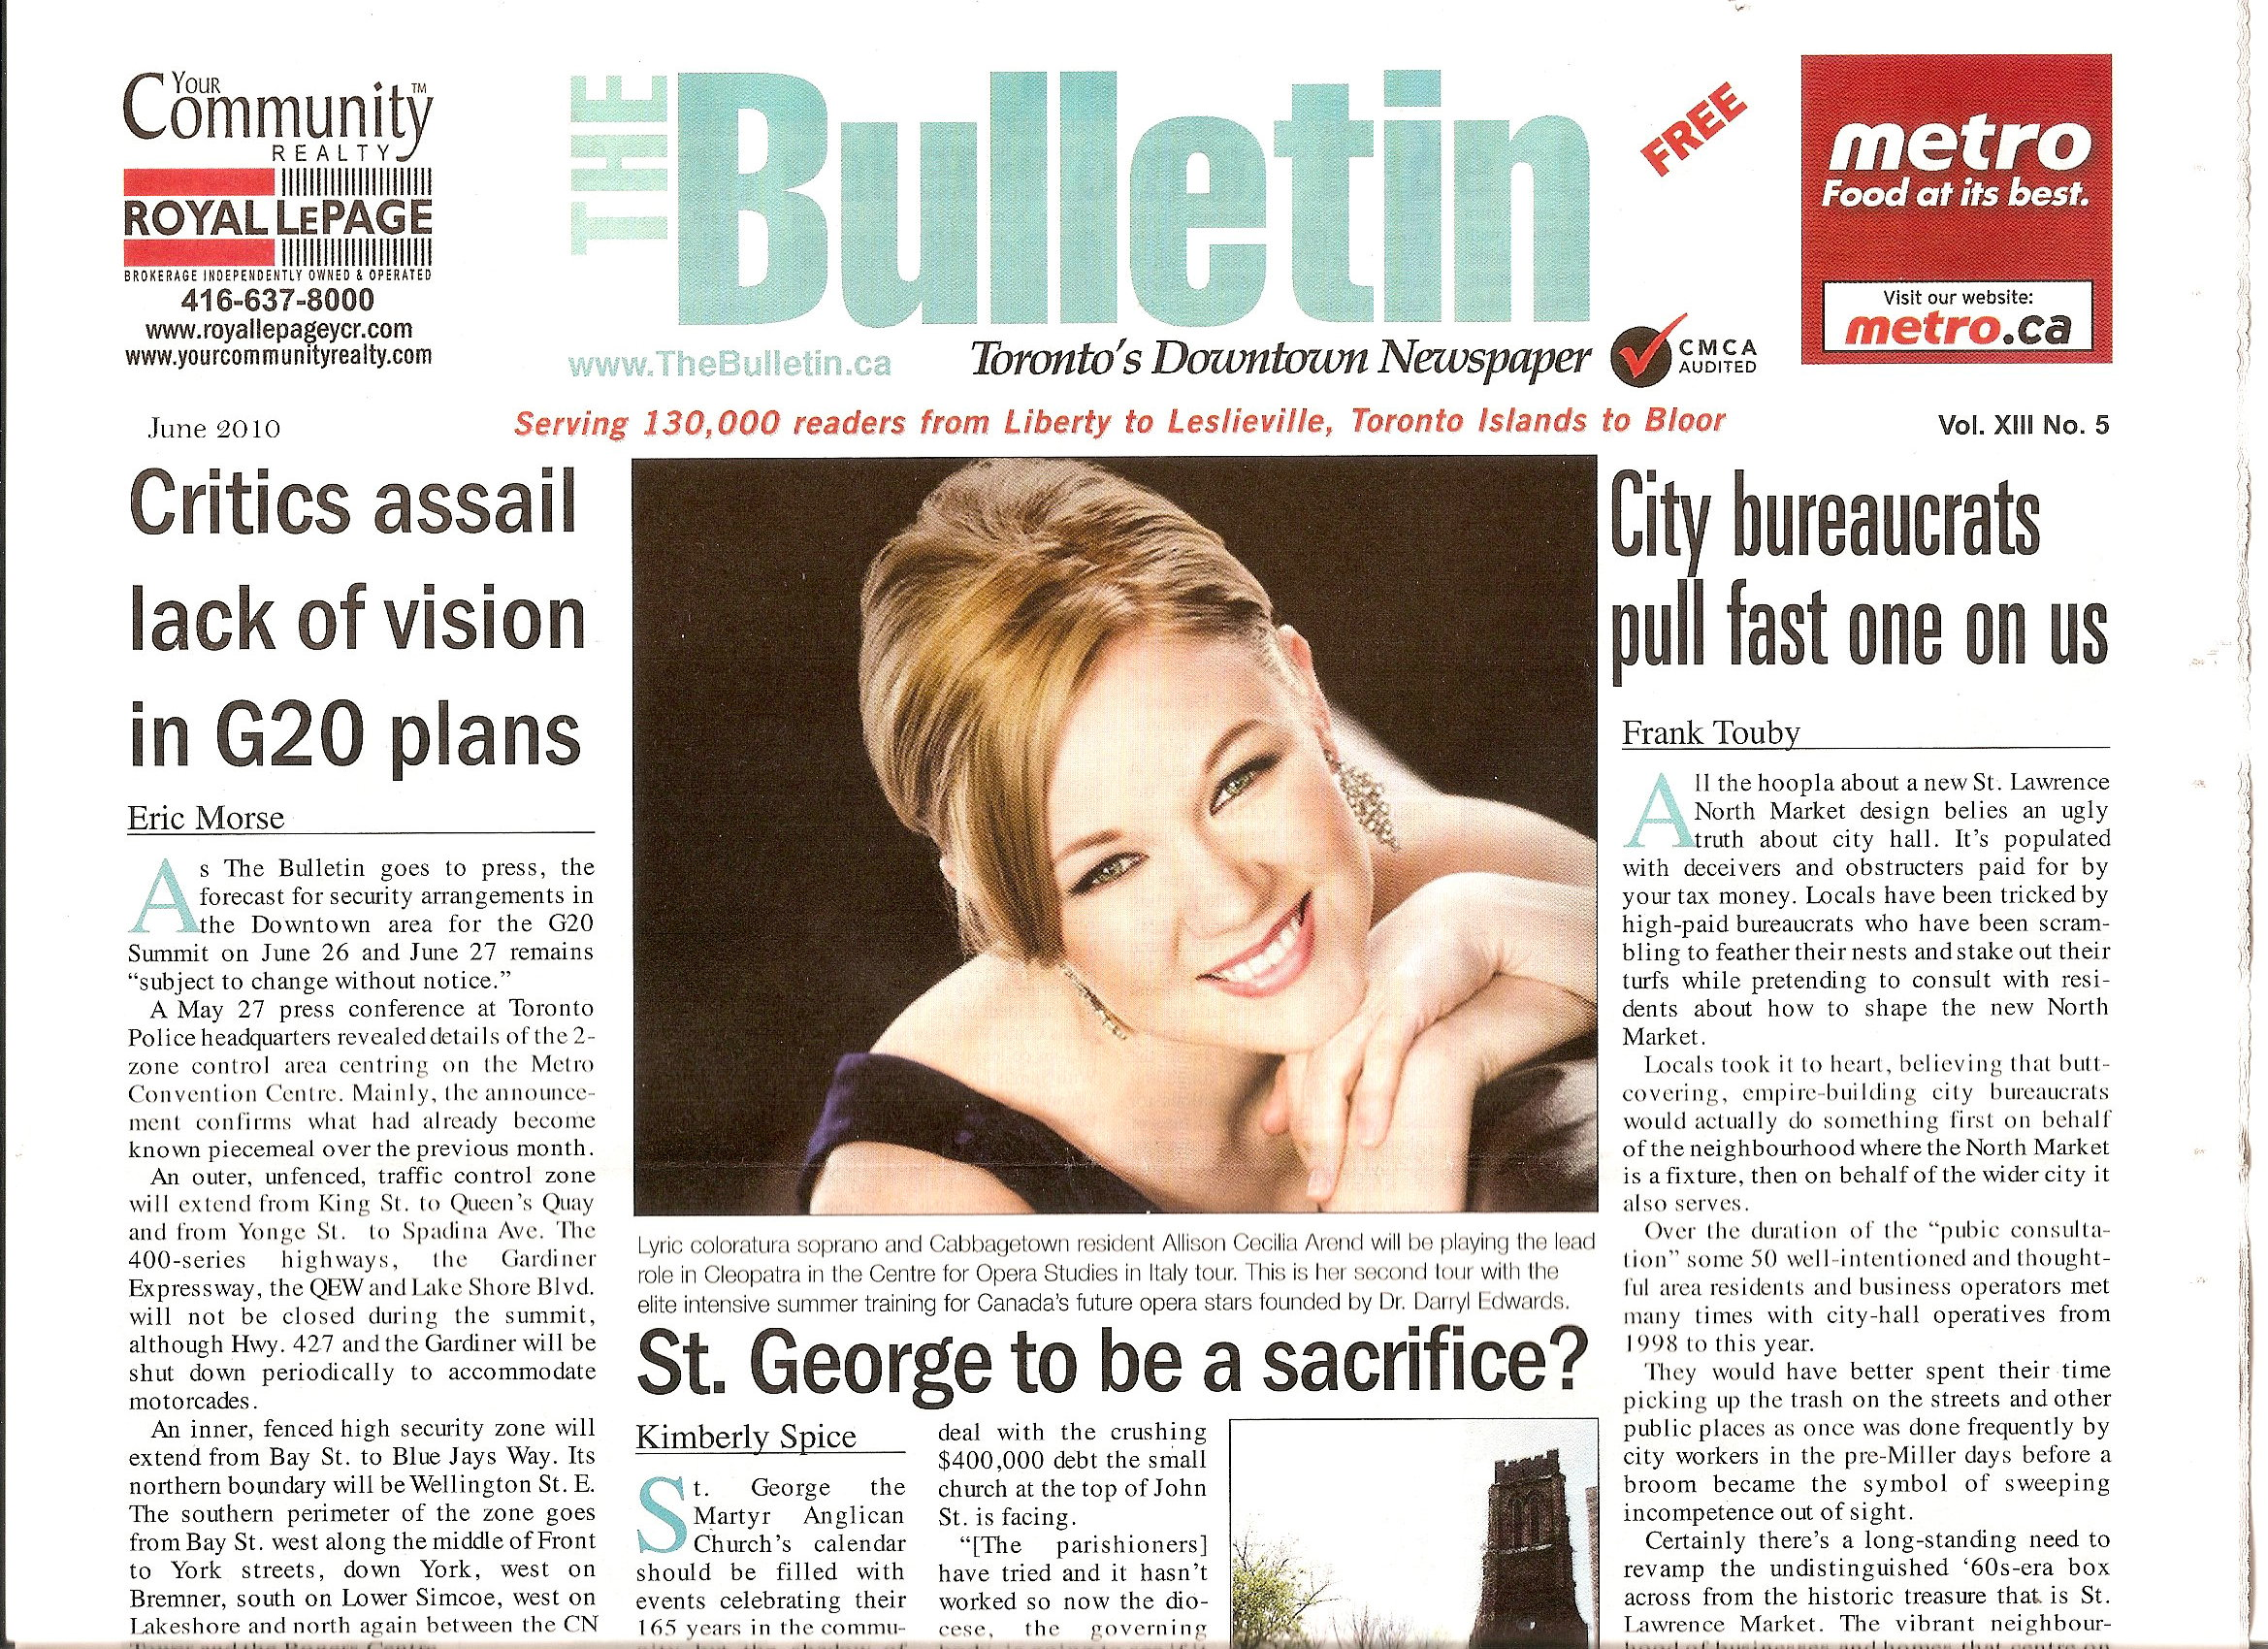 The Bulletin Feature